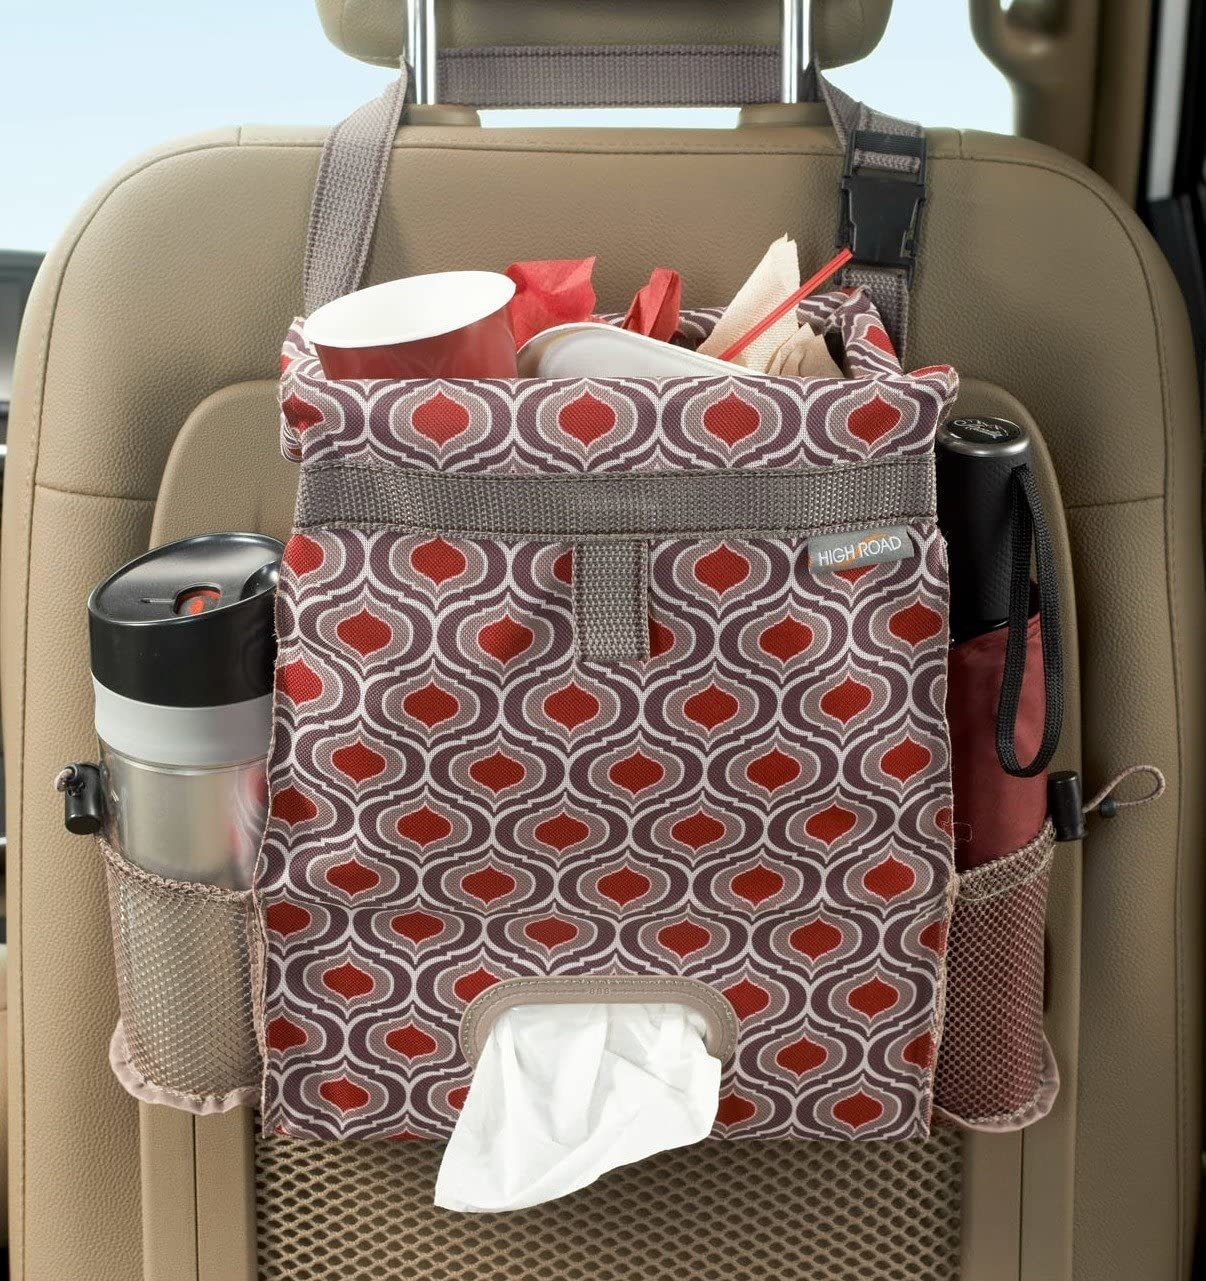 red abstract pattern organizer that goes on the back of the seat that holds tissues, trash, and water bottles